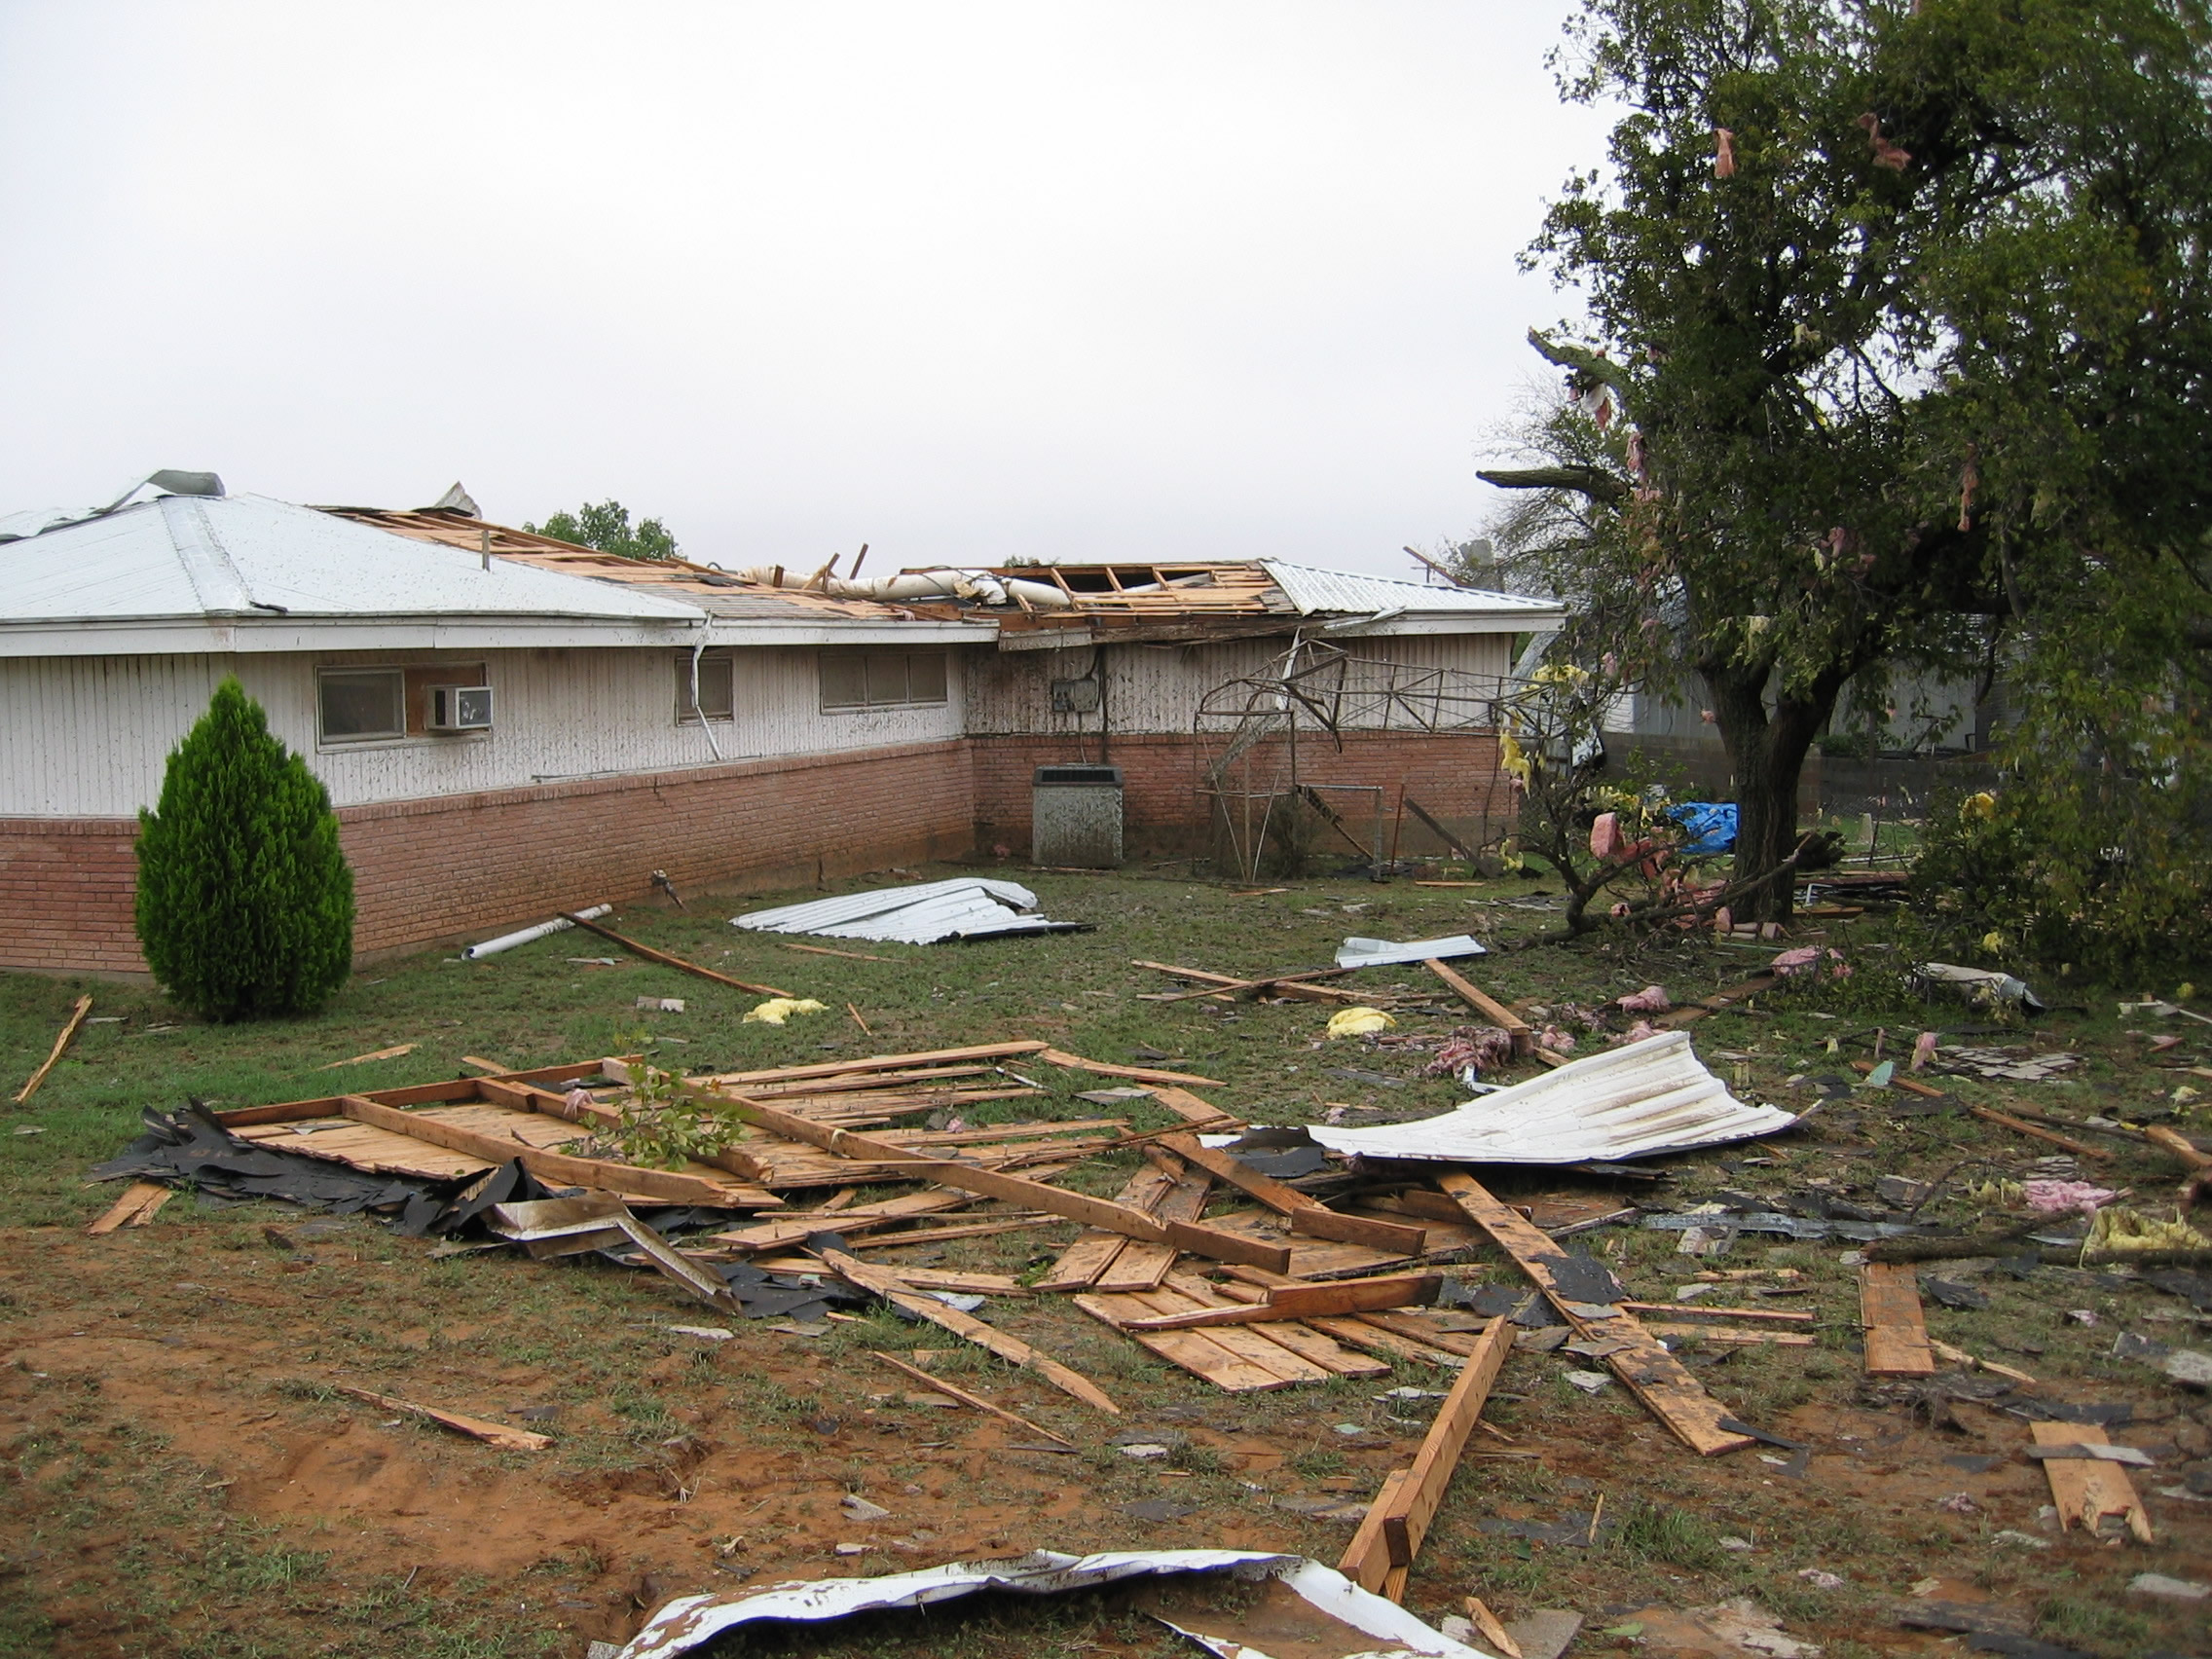 Second photo of house sustaining F1 tornado damage showing roof blown from the house.